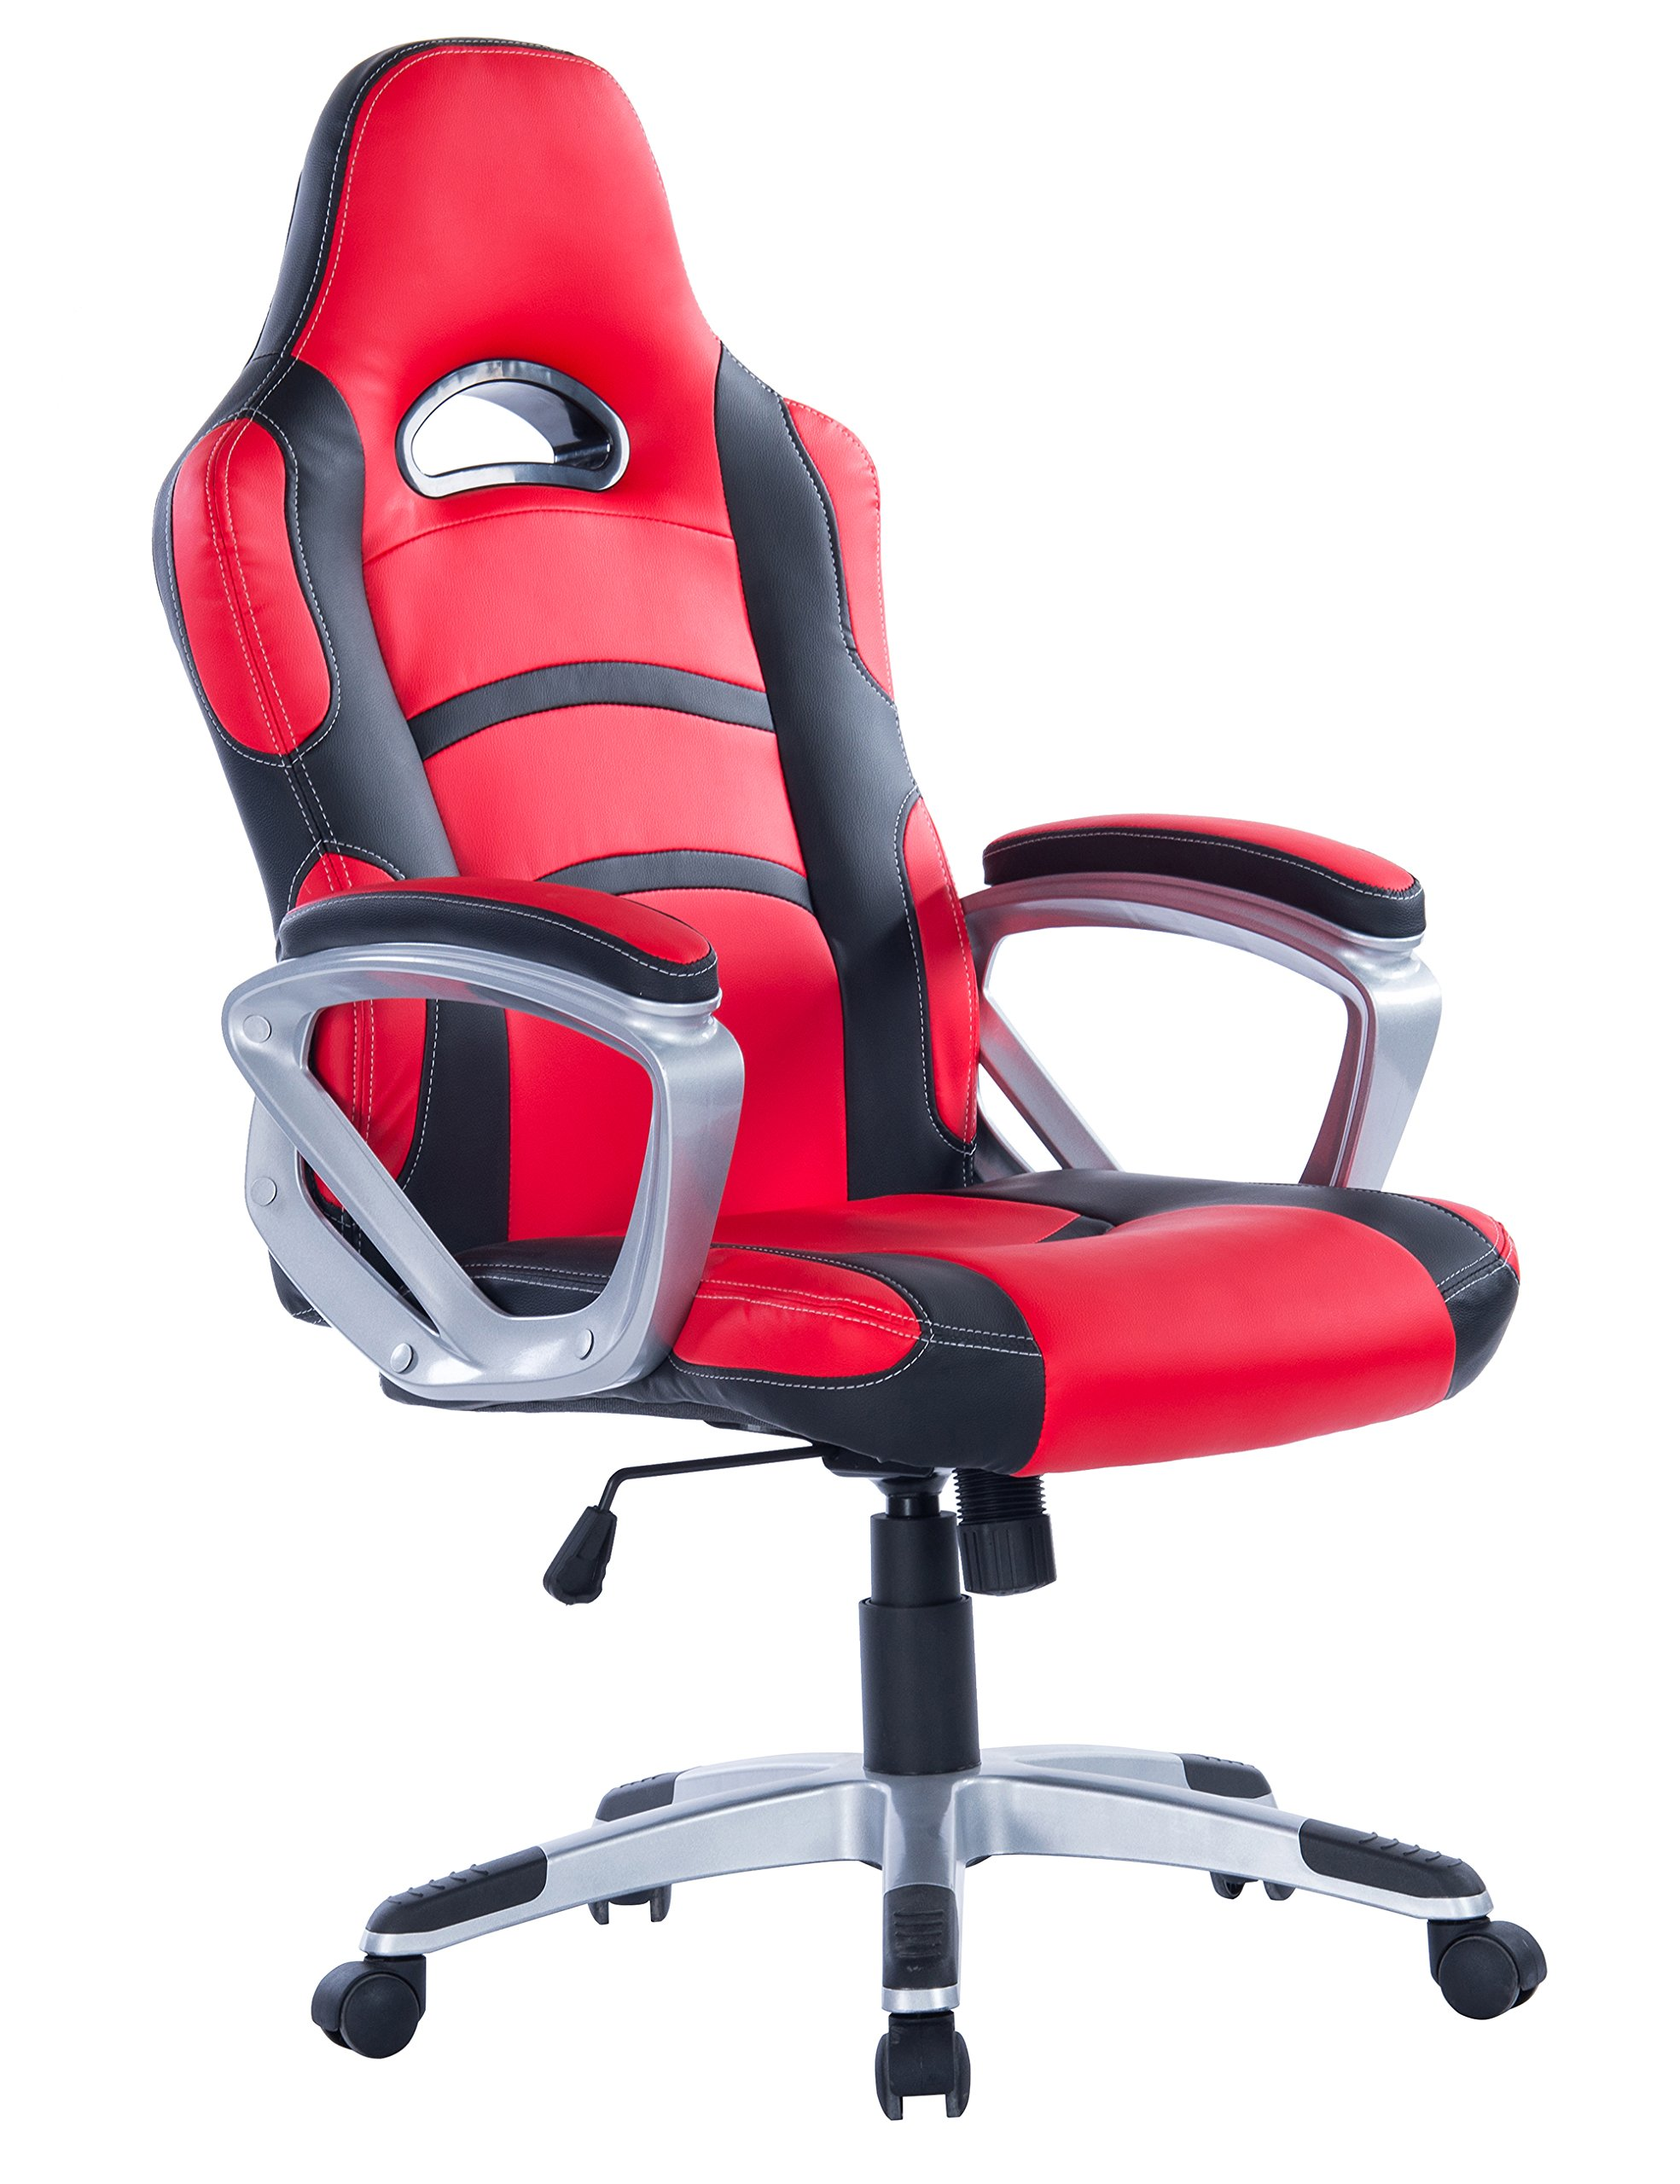 Killbee Large Ergonomic Gaming Chair  High Back Swivel  Executive Office Chair Height Adjustable PU Leather Bucket Seat Task Chair (Red)